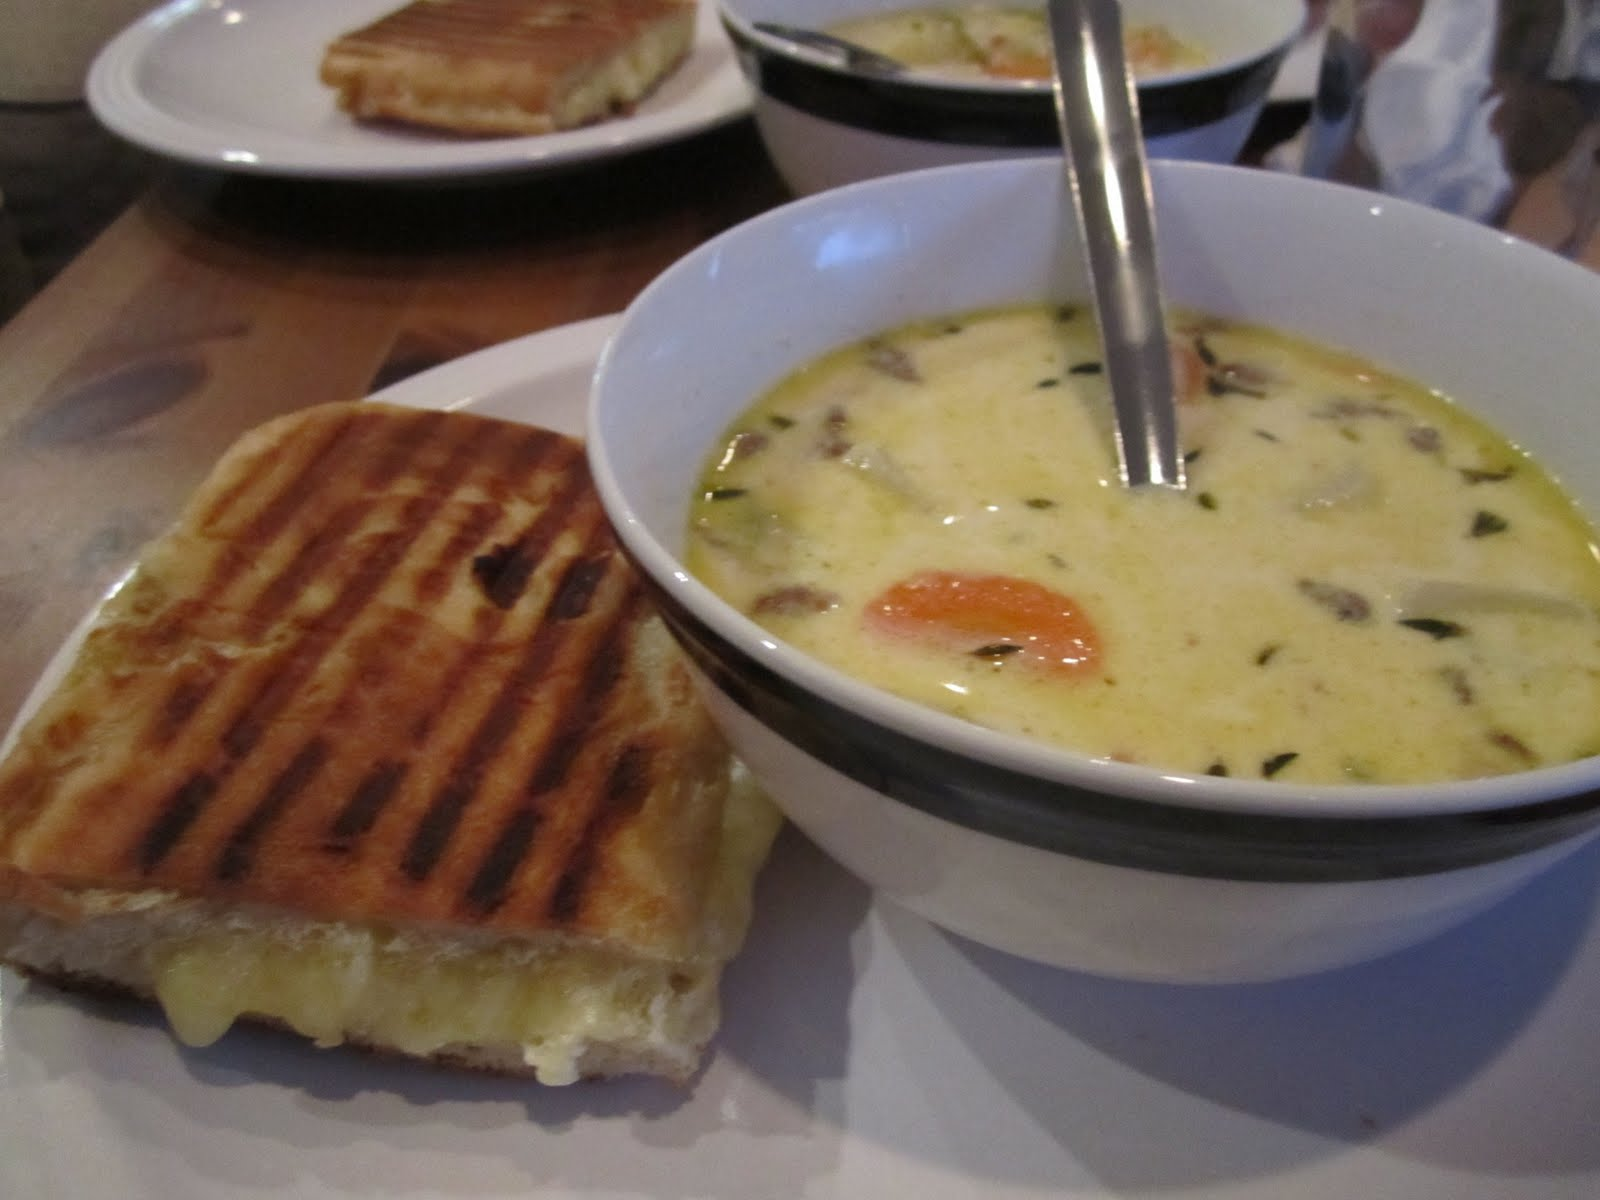 ... awesome: an attempt at Hog Oyster's clam chowder and grilled cheese